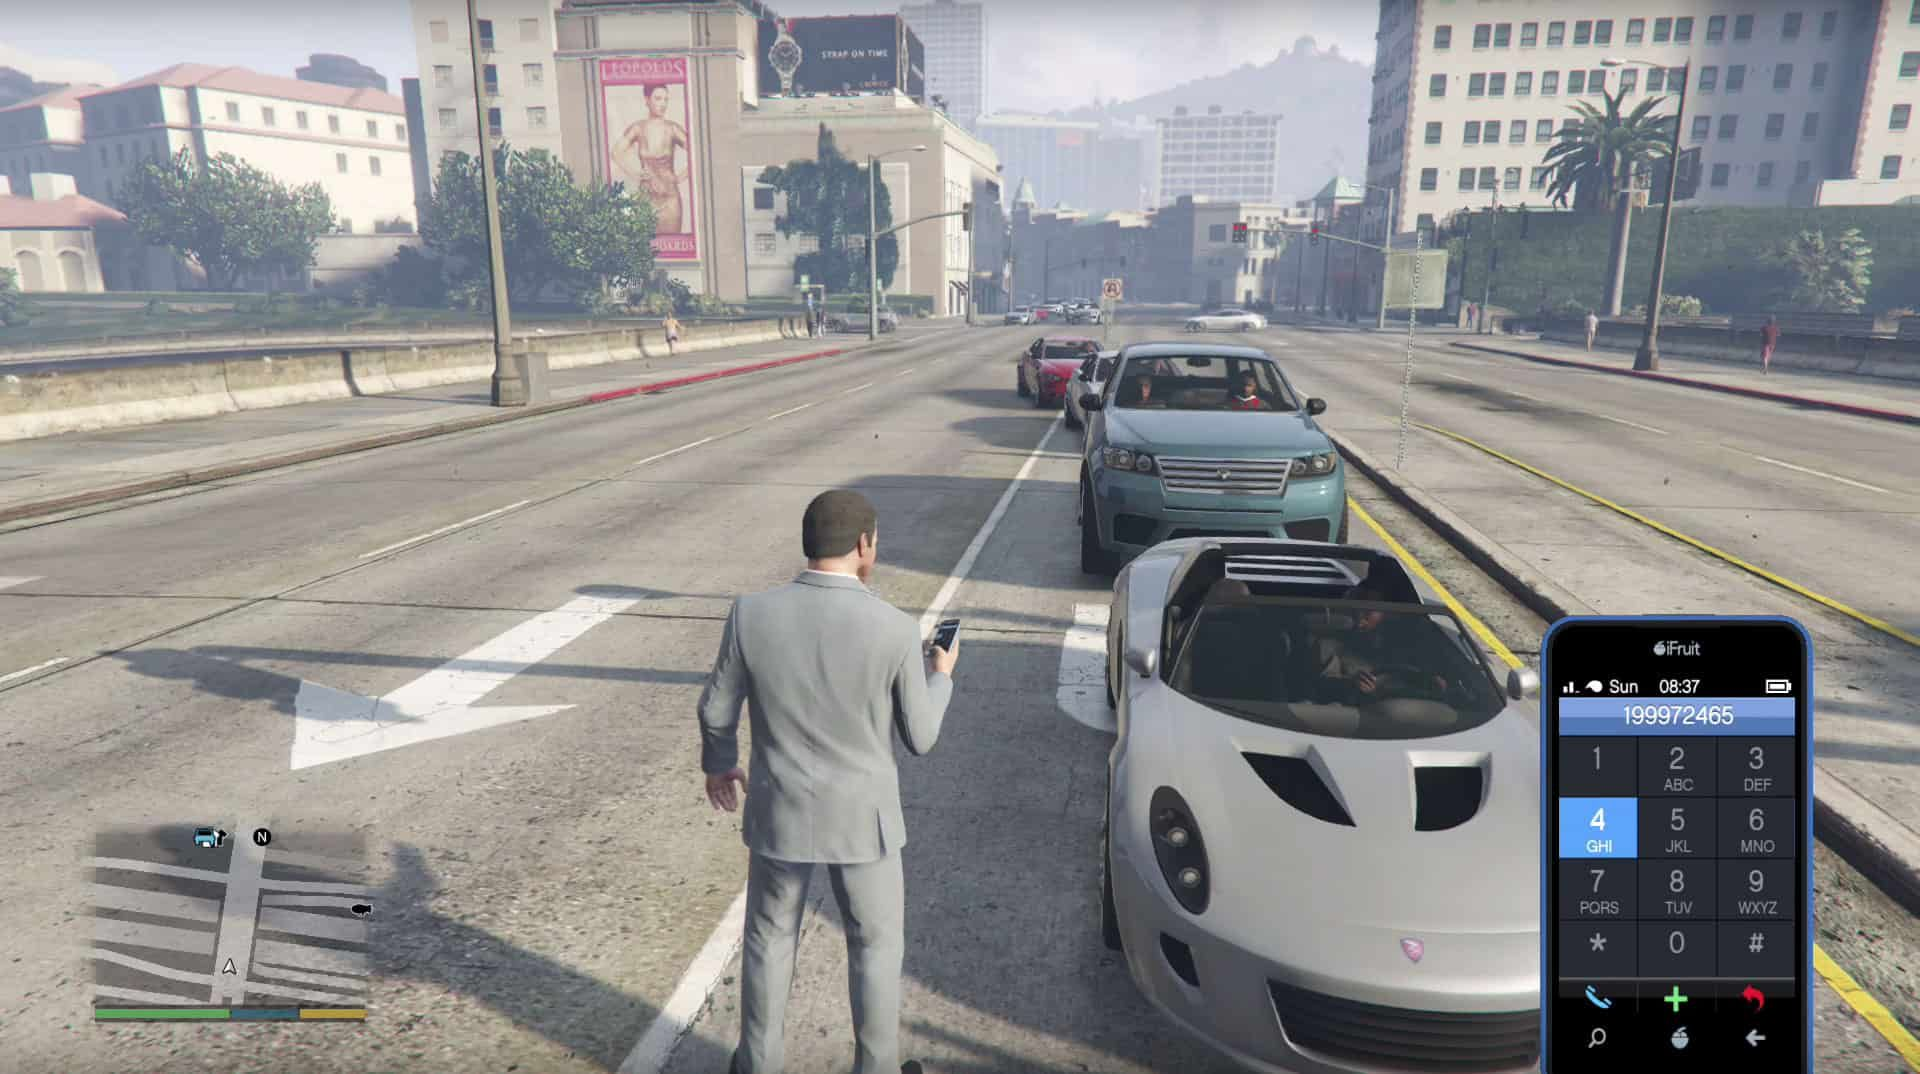 The Best Cheat Codes For Gta 5 Ps4 Cars Numbers And View Gta 5 Cheats Ps4 Gta 5 Gta